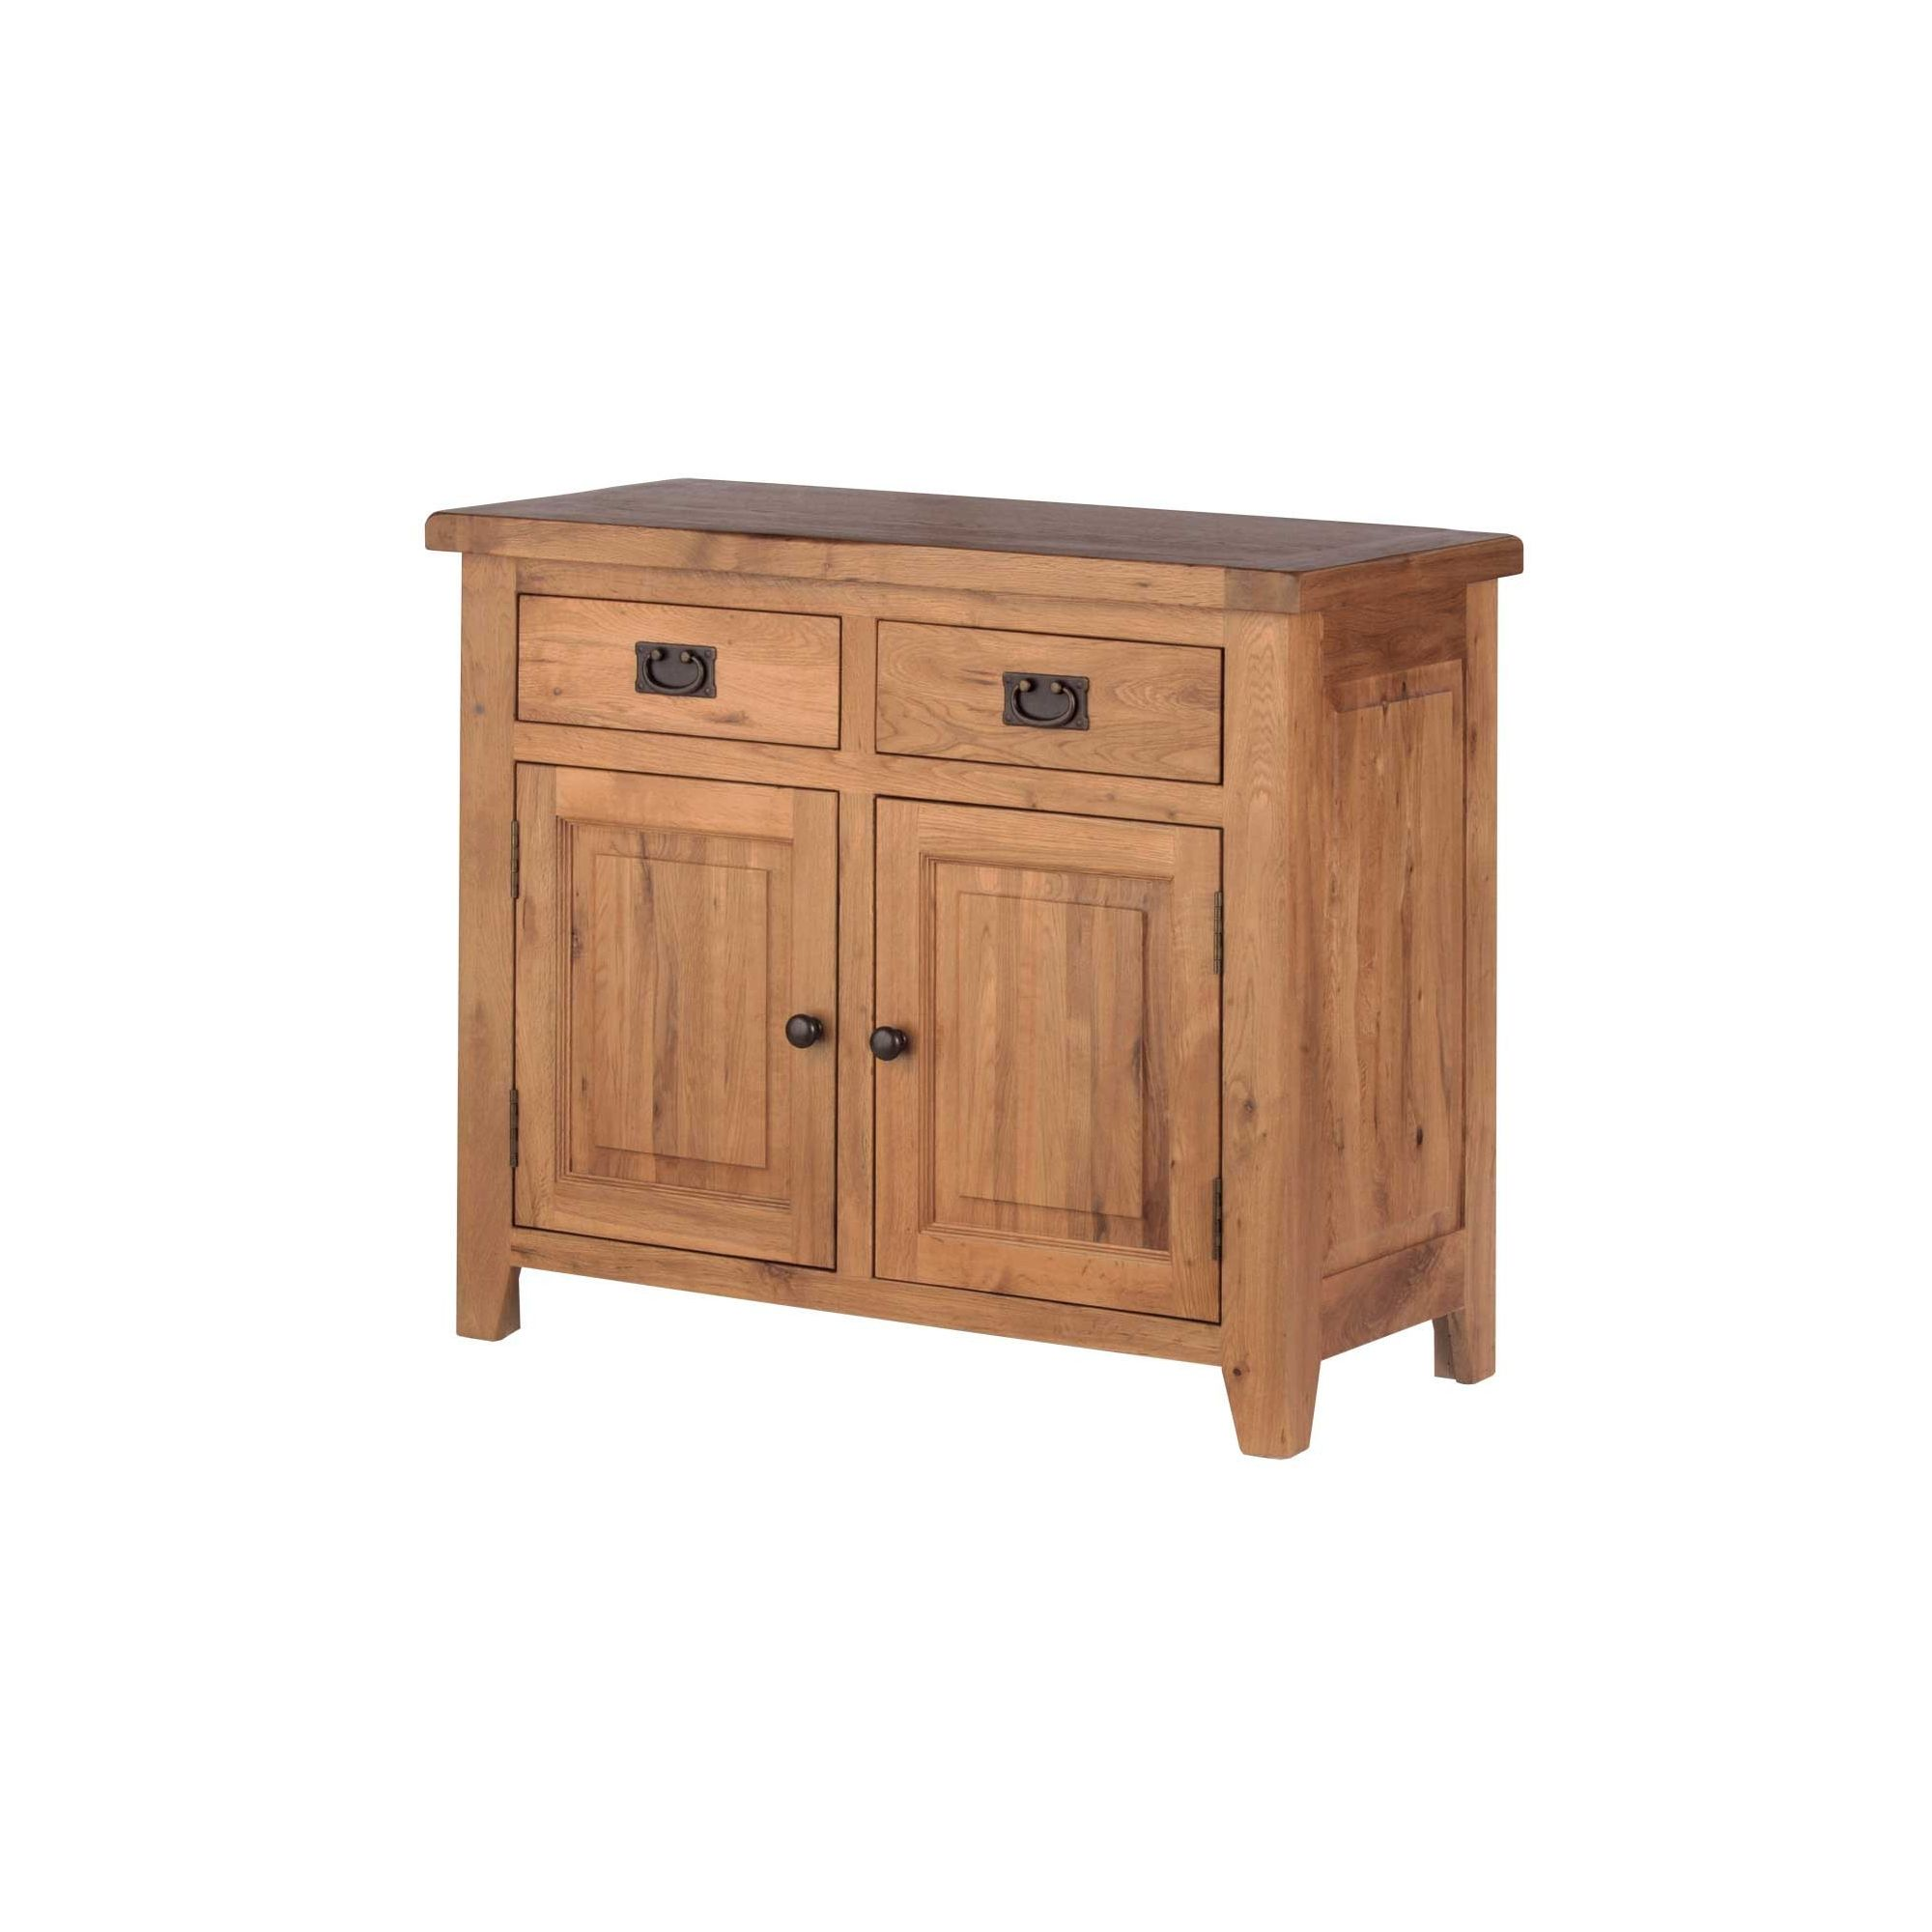 Thorndon Sandown Standard Sideboard in Rustic Oak at Tescos Direct